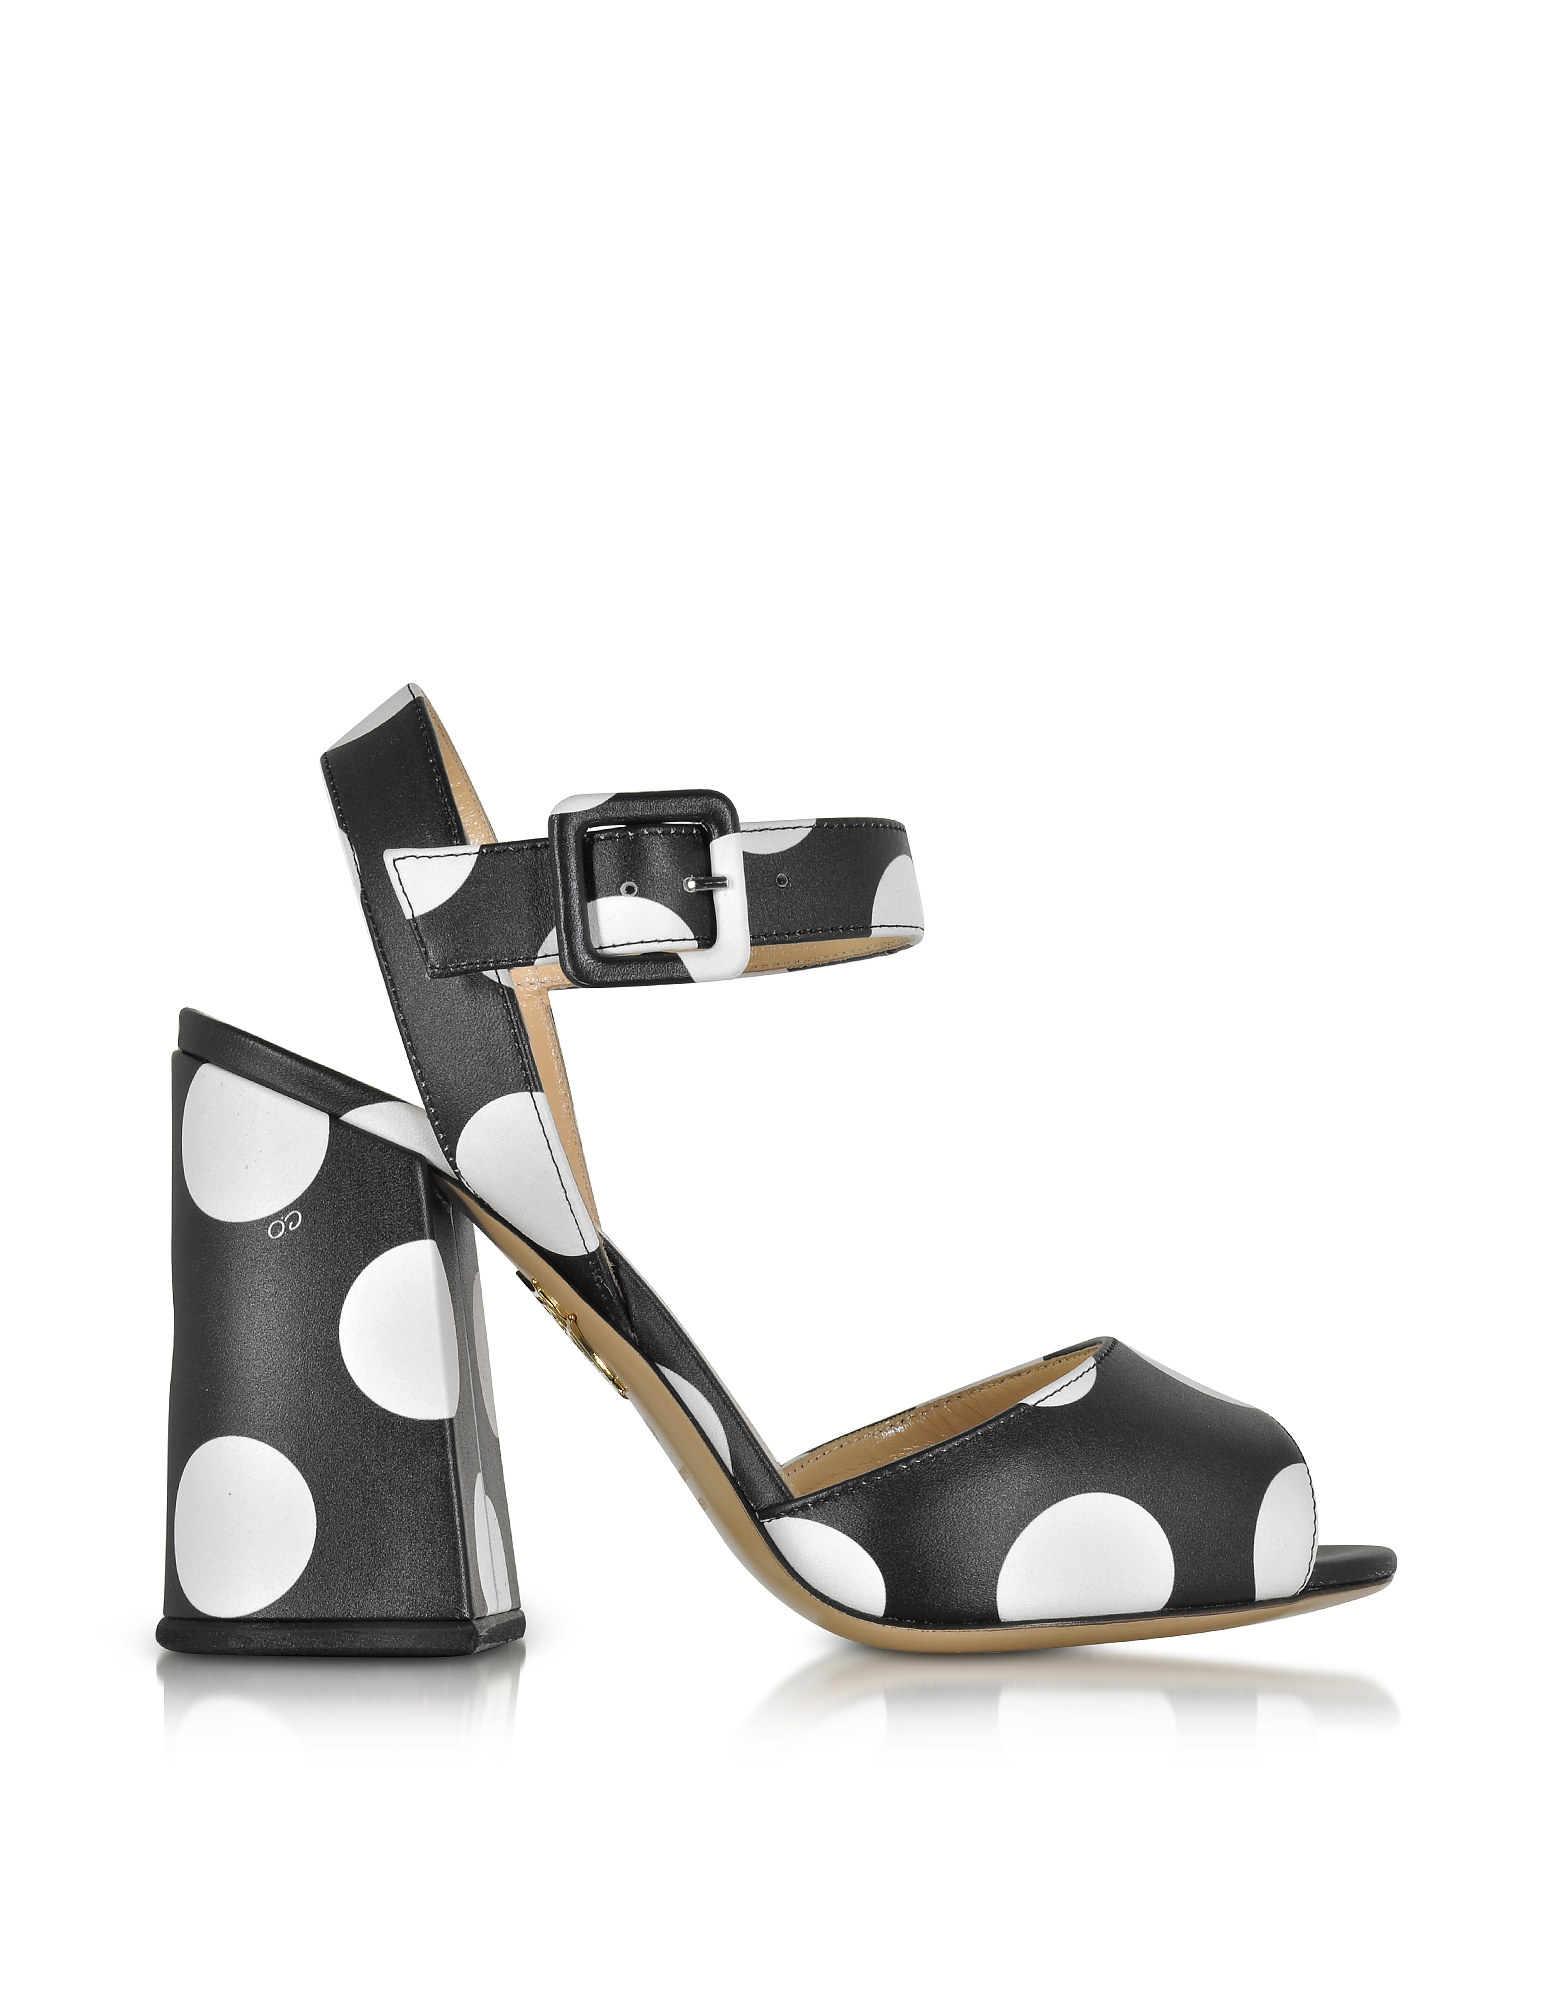 Charlotte Olympia Shoes, Emma Black Polka Dot Print Leather Sandal